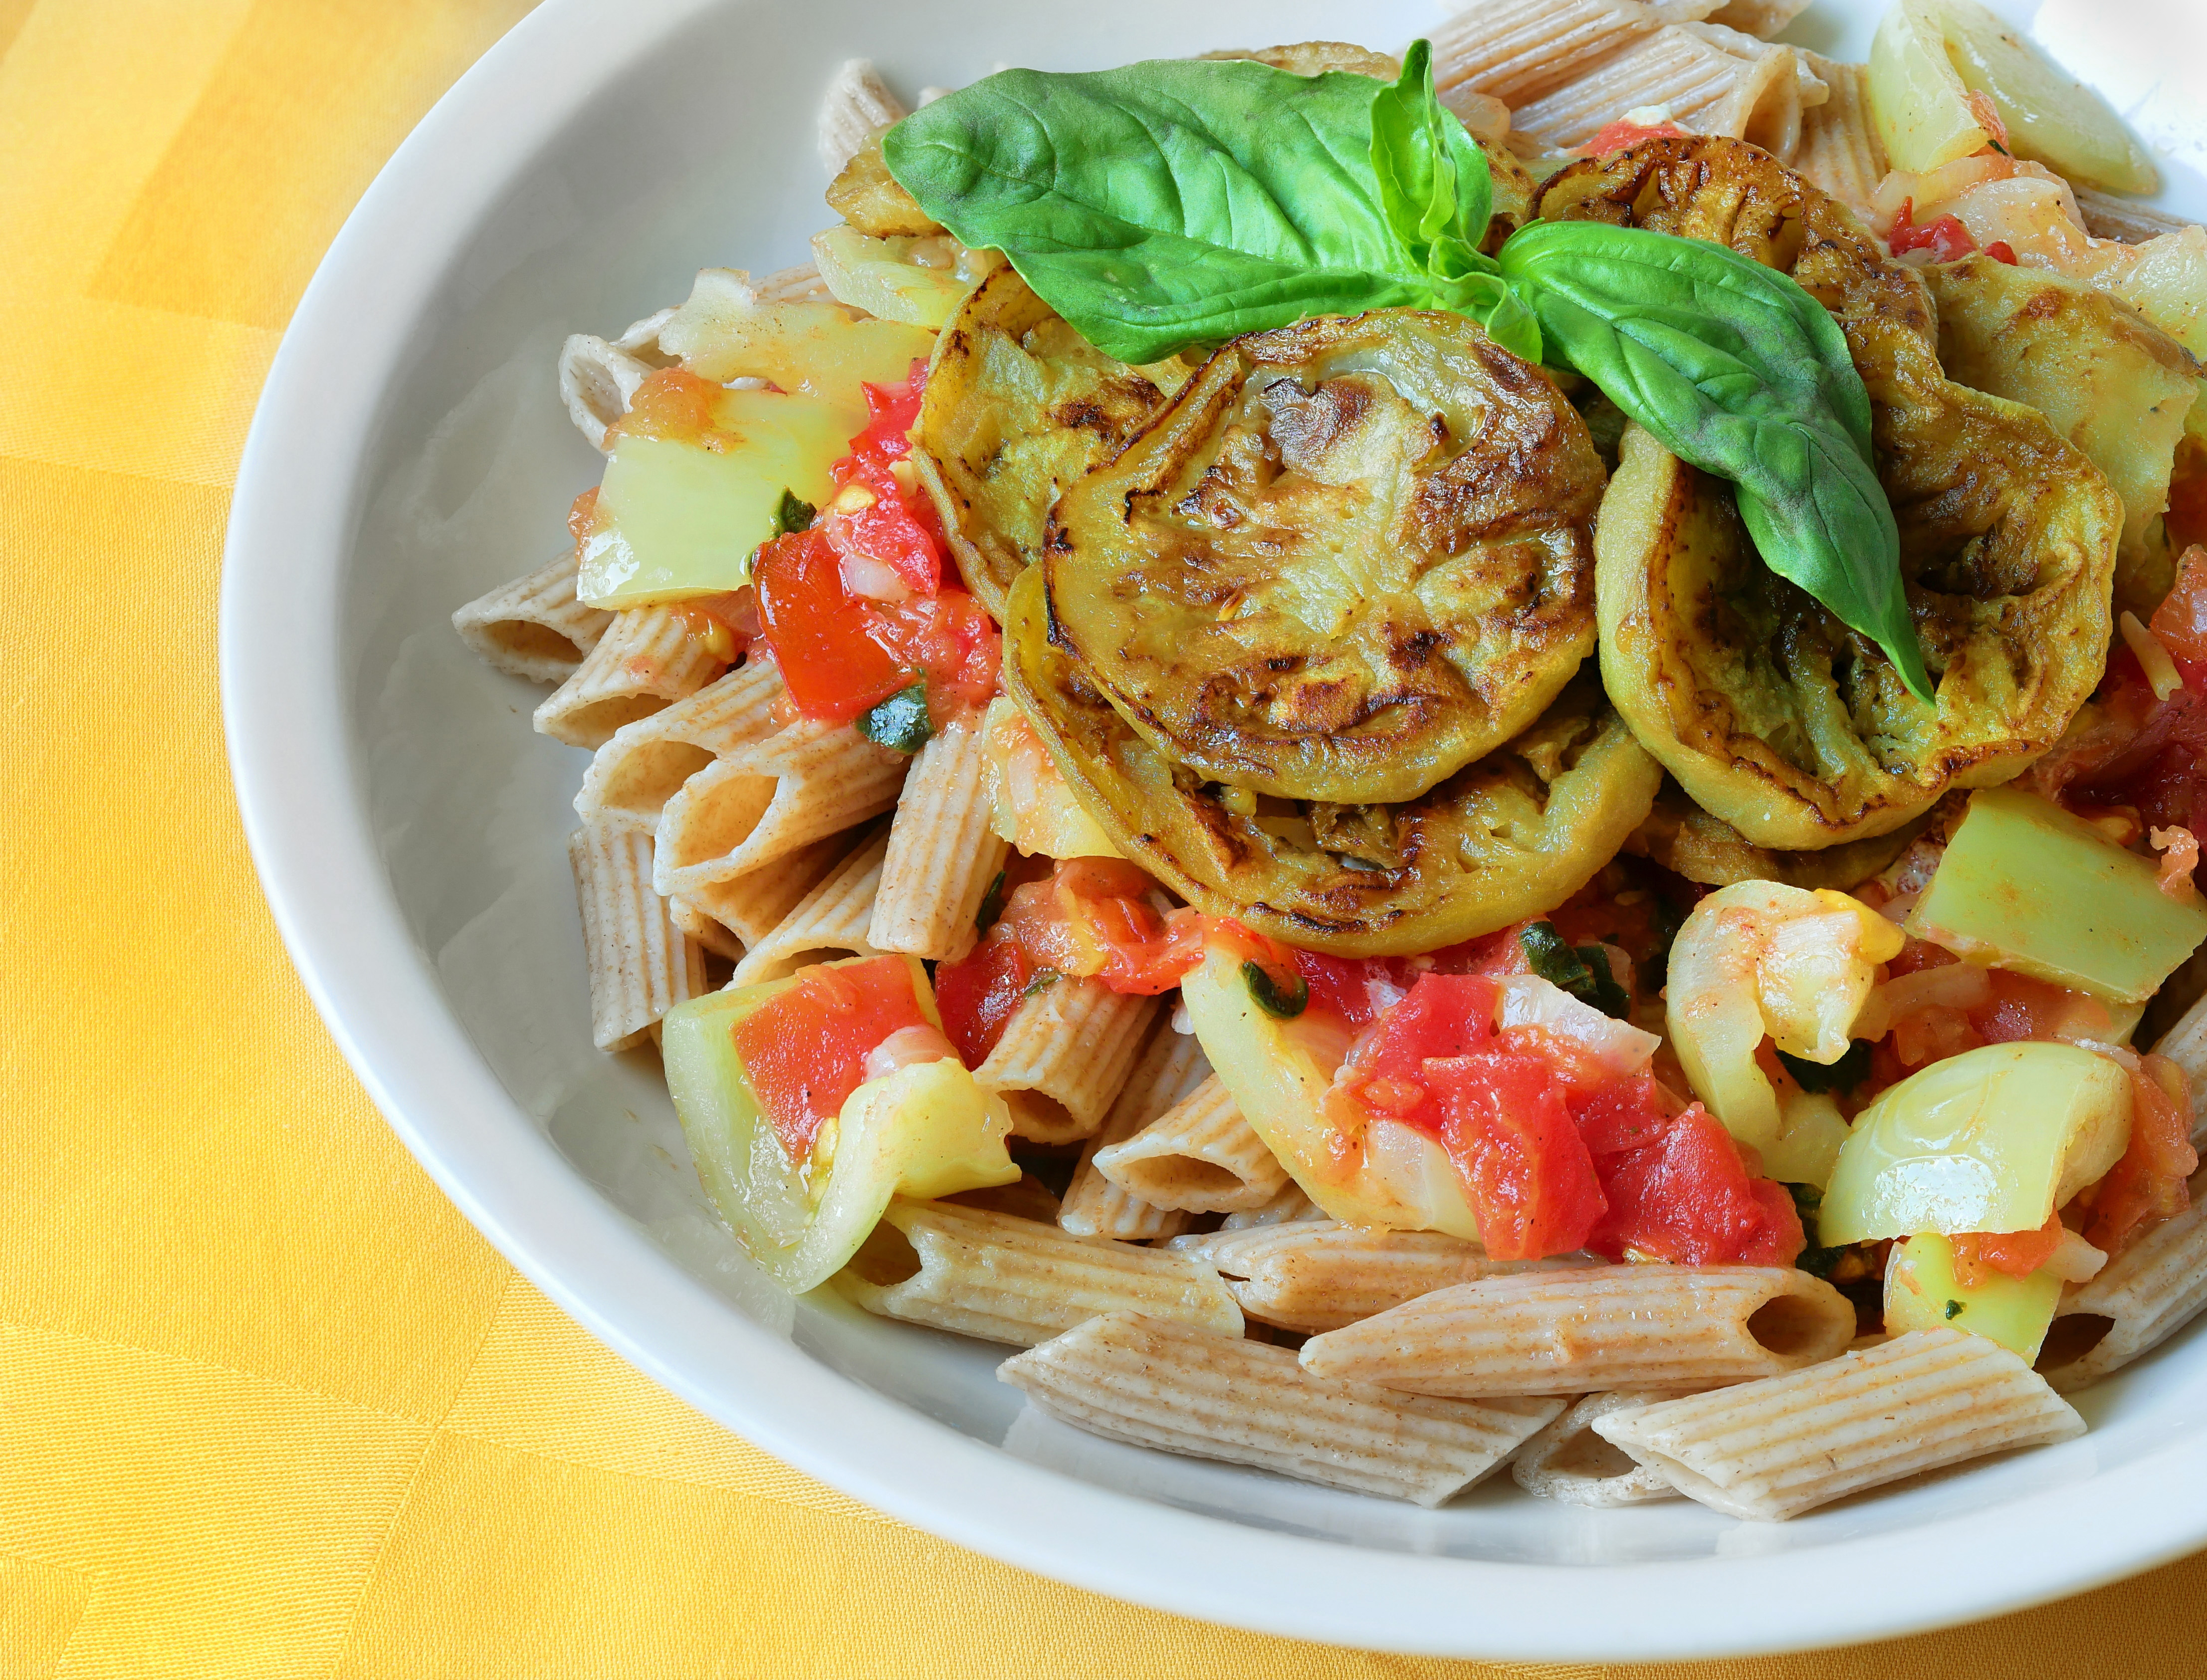 Penne_with_eggplant_and_basil_in_yogurt-tomato_sauce